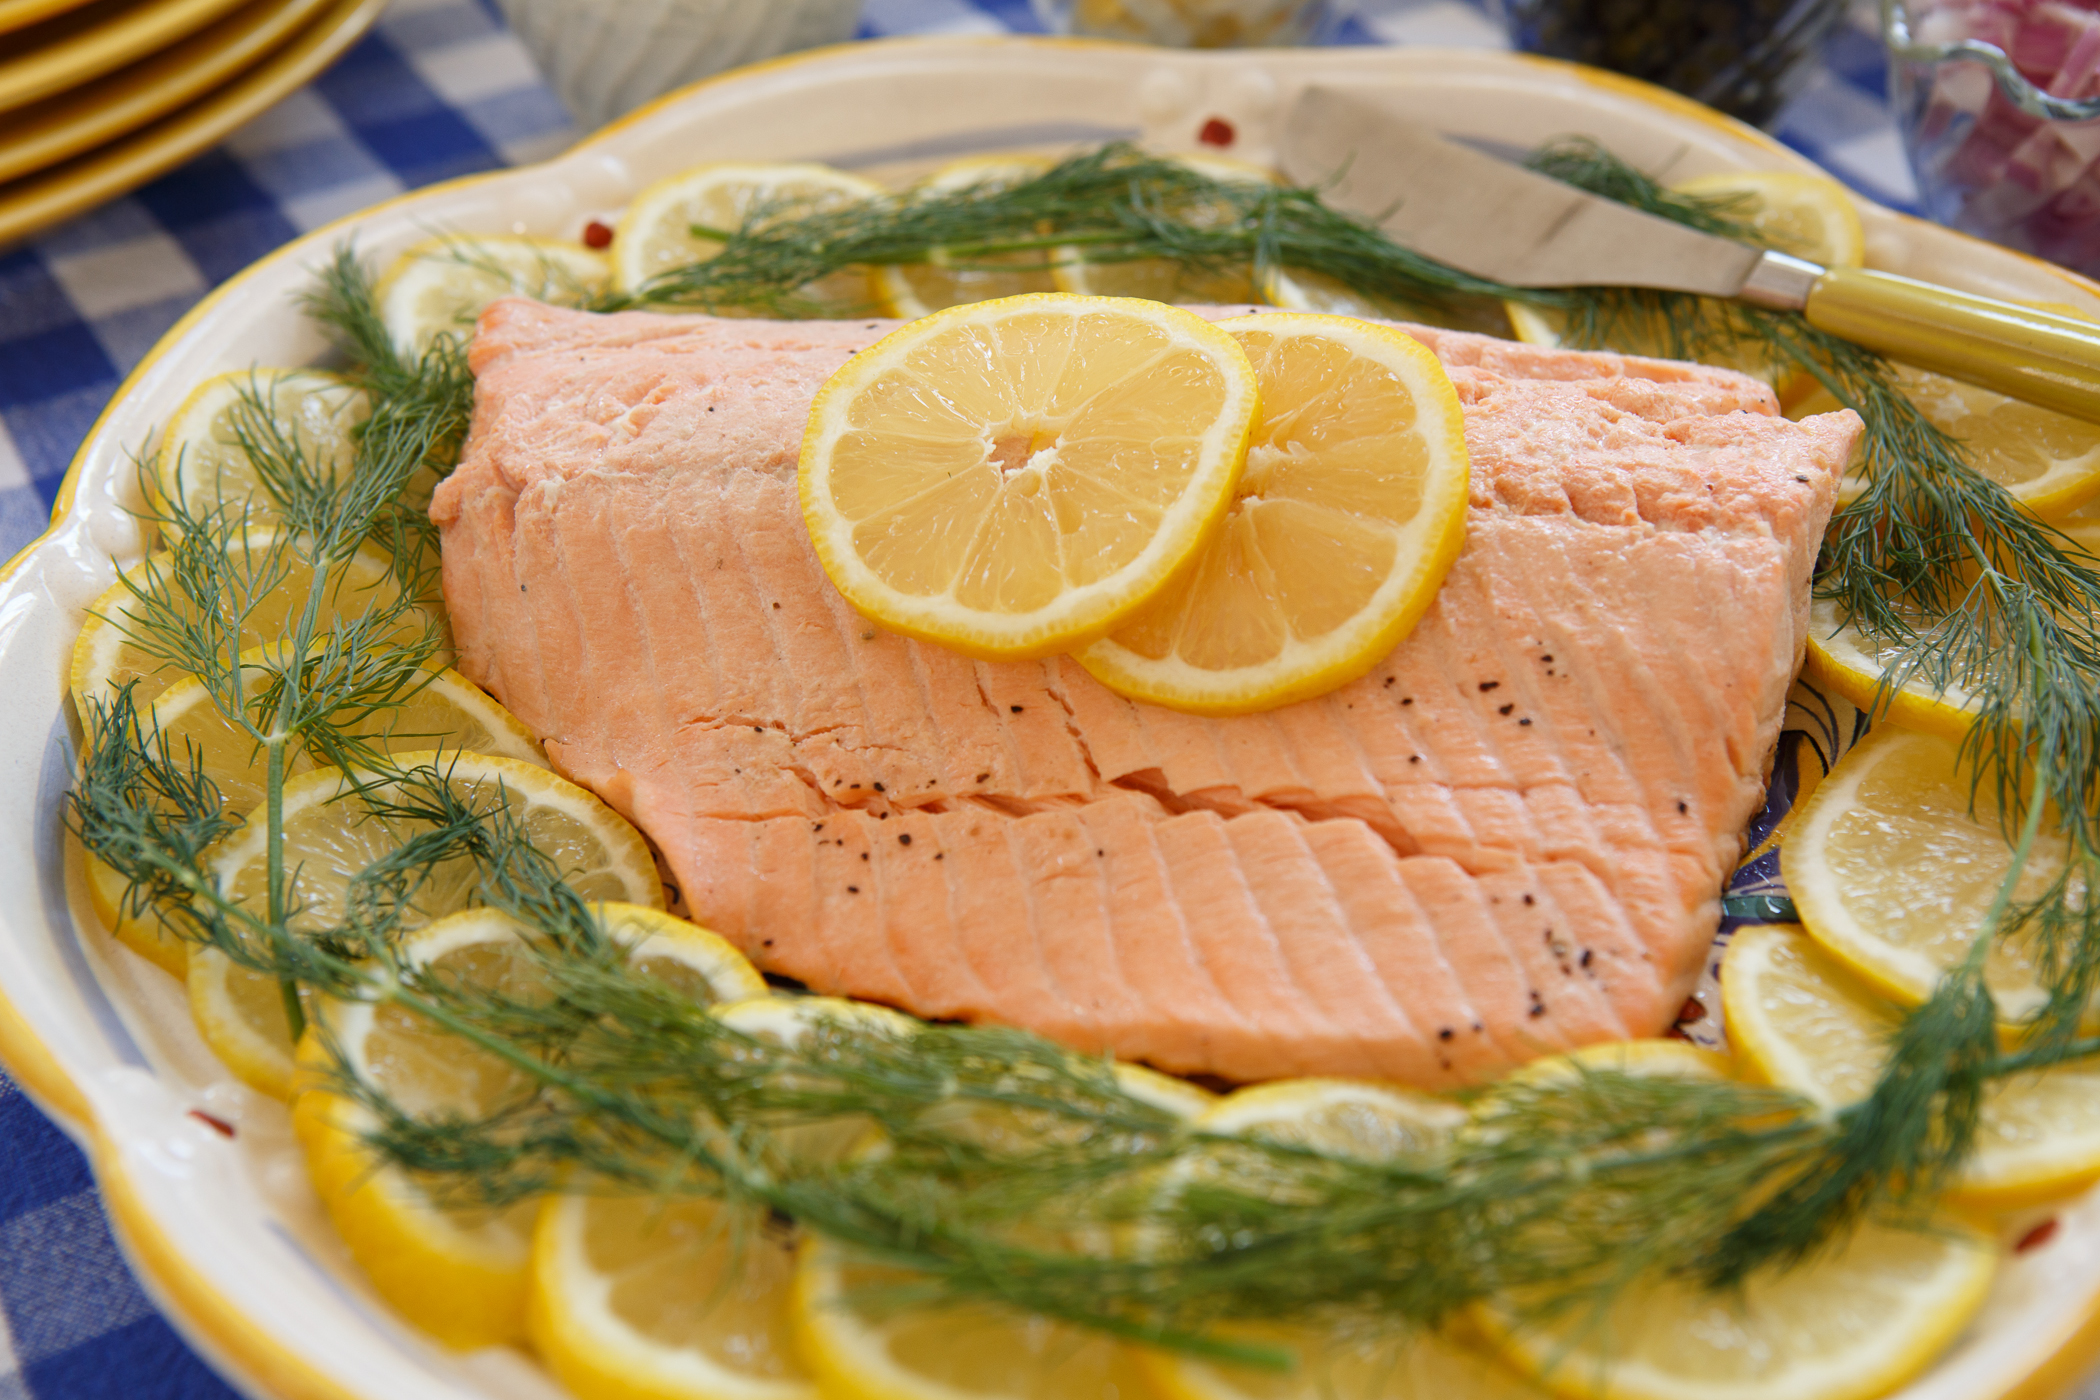 Cold Poached Salmon with Dill Sauce